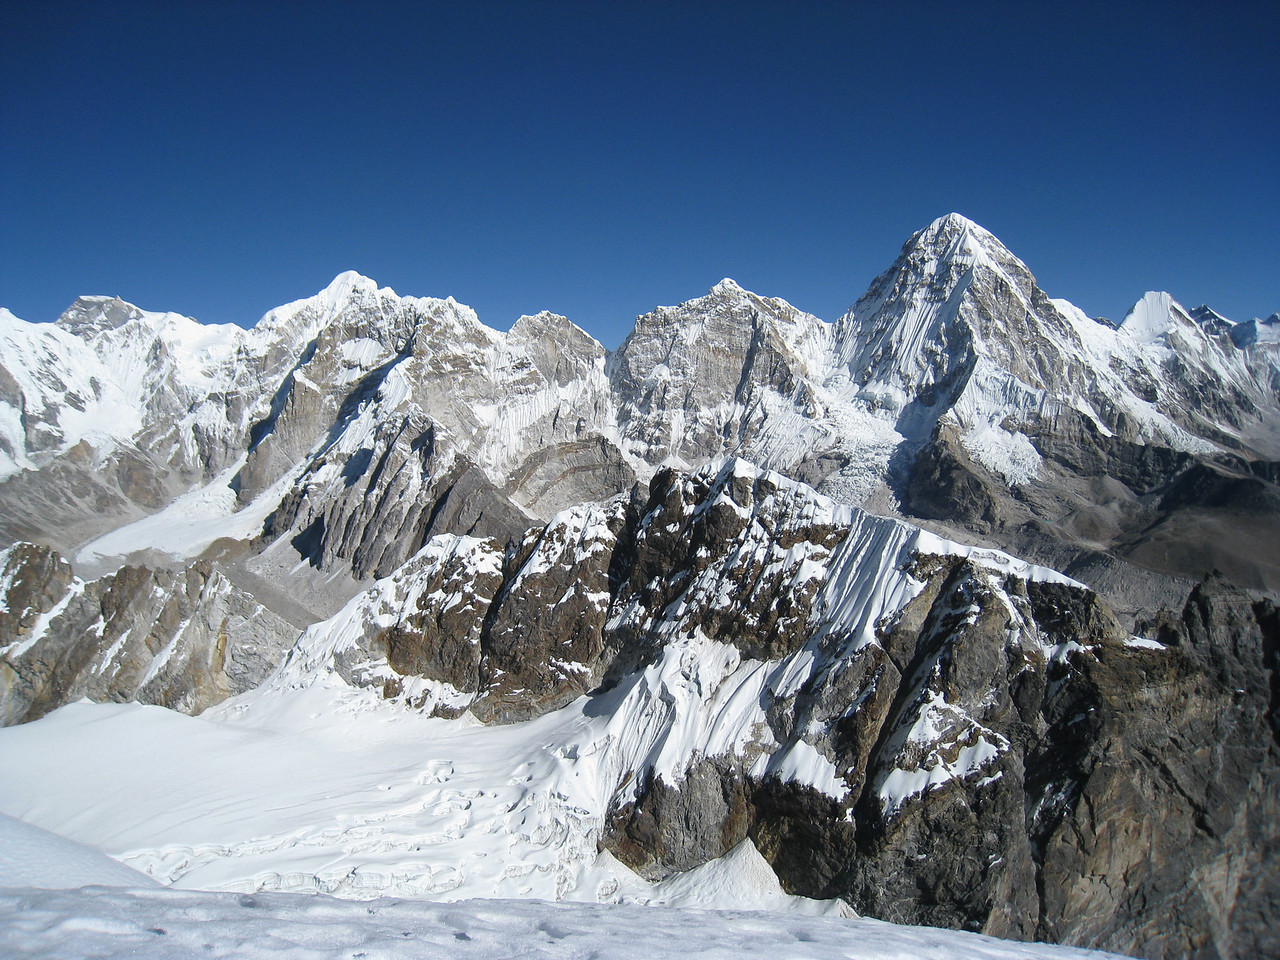 View from summit of Lobuche East 6119m, Pumori is visible to the right